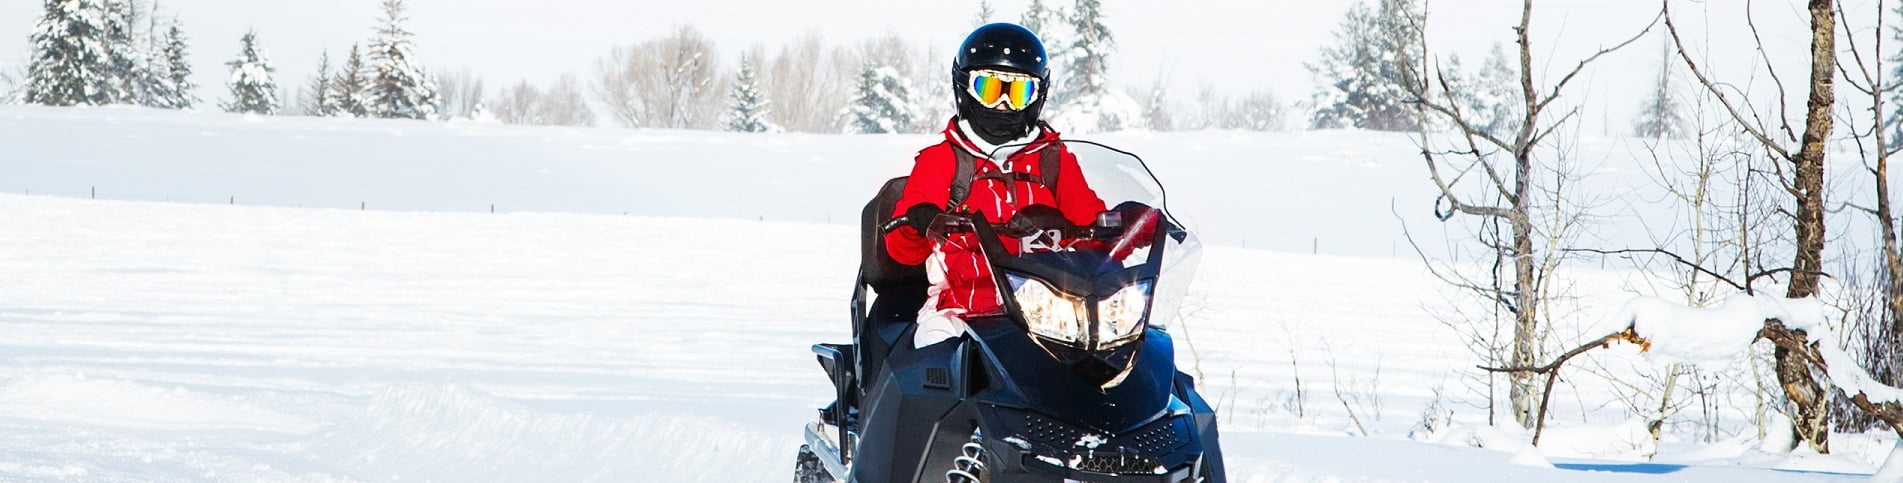 Woman driving a snowmobile in Colorado, USA - panning motion blur